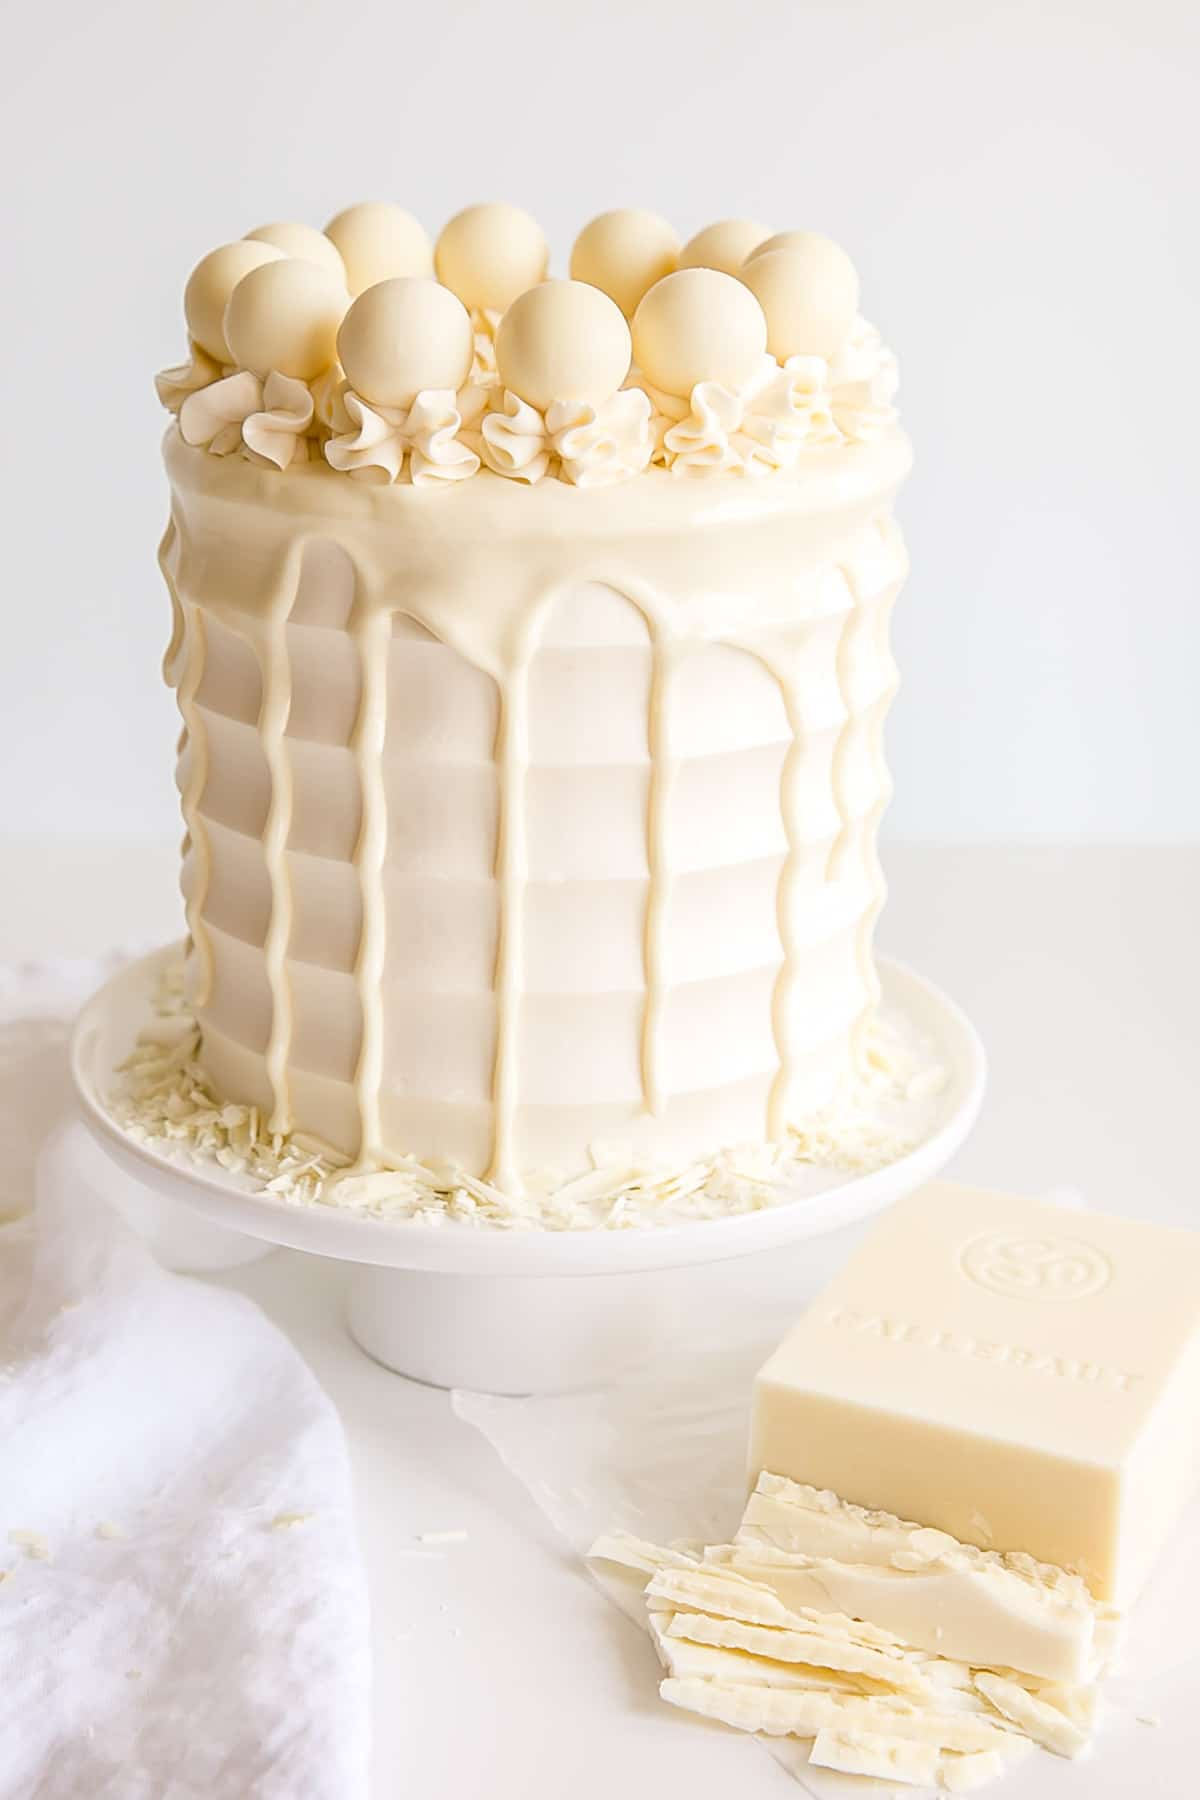 White Chocolate Cake with a chopped up bar of white chocolate on the side.